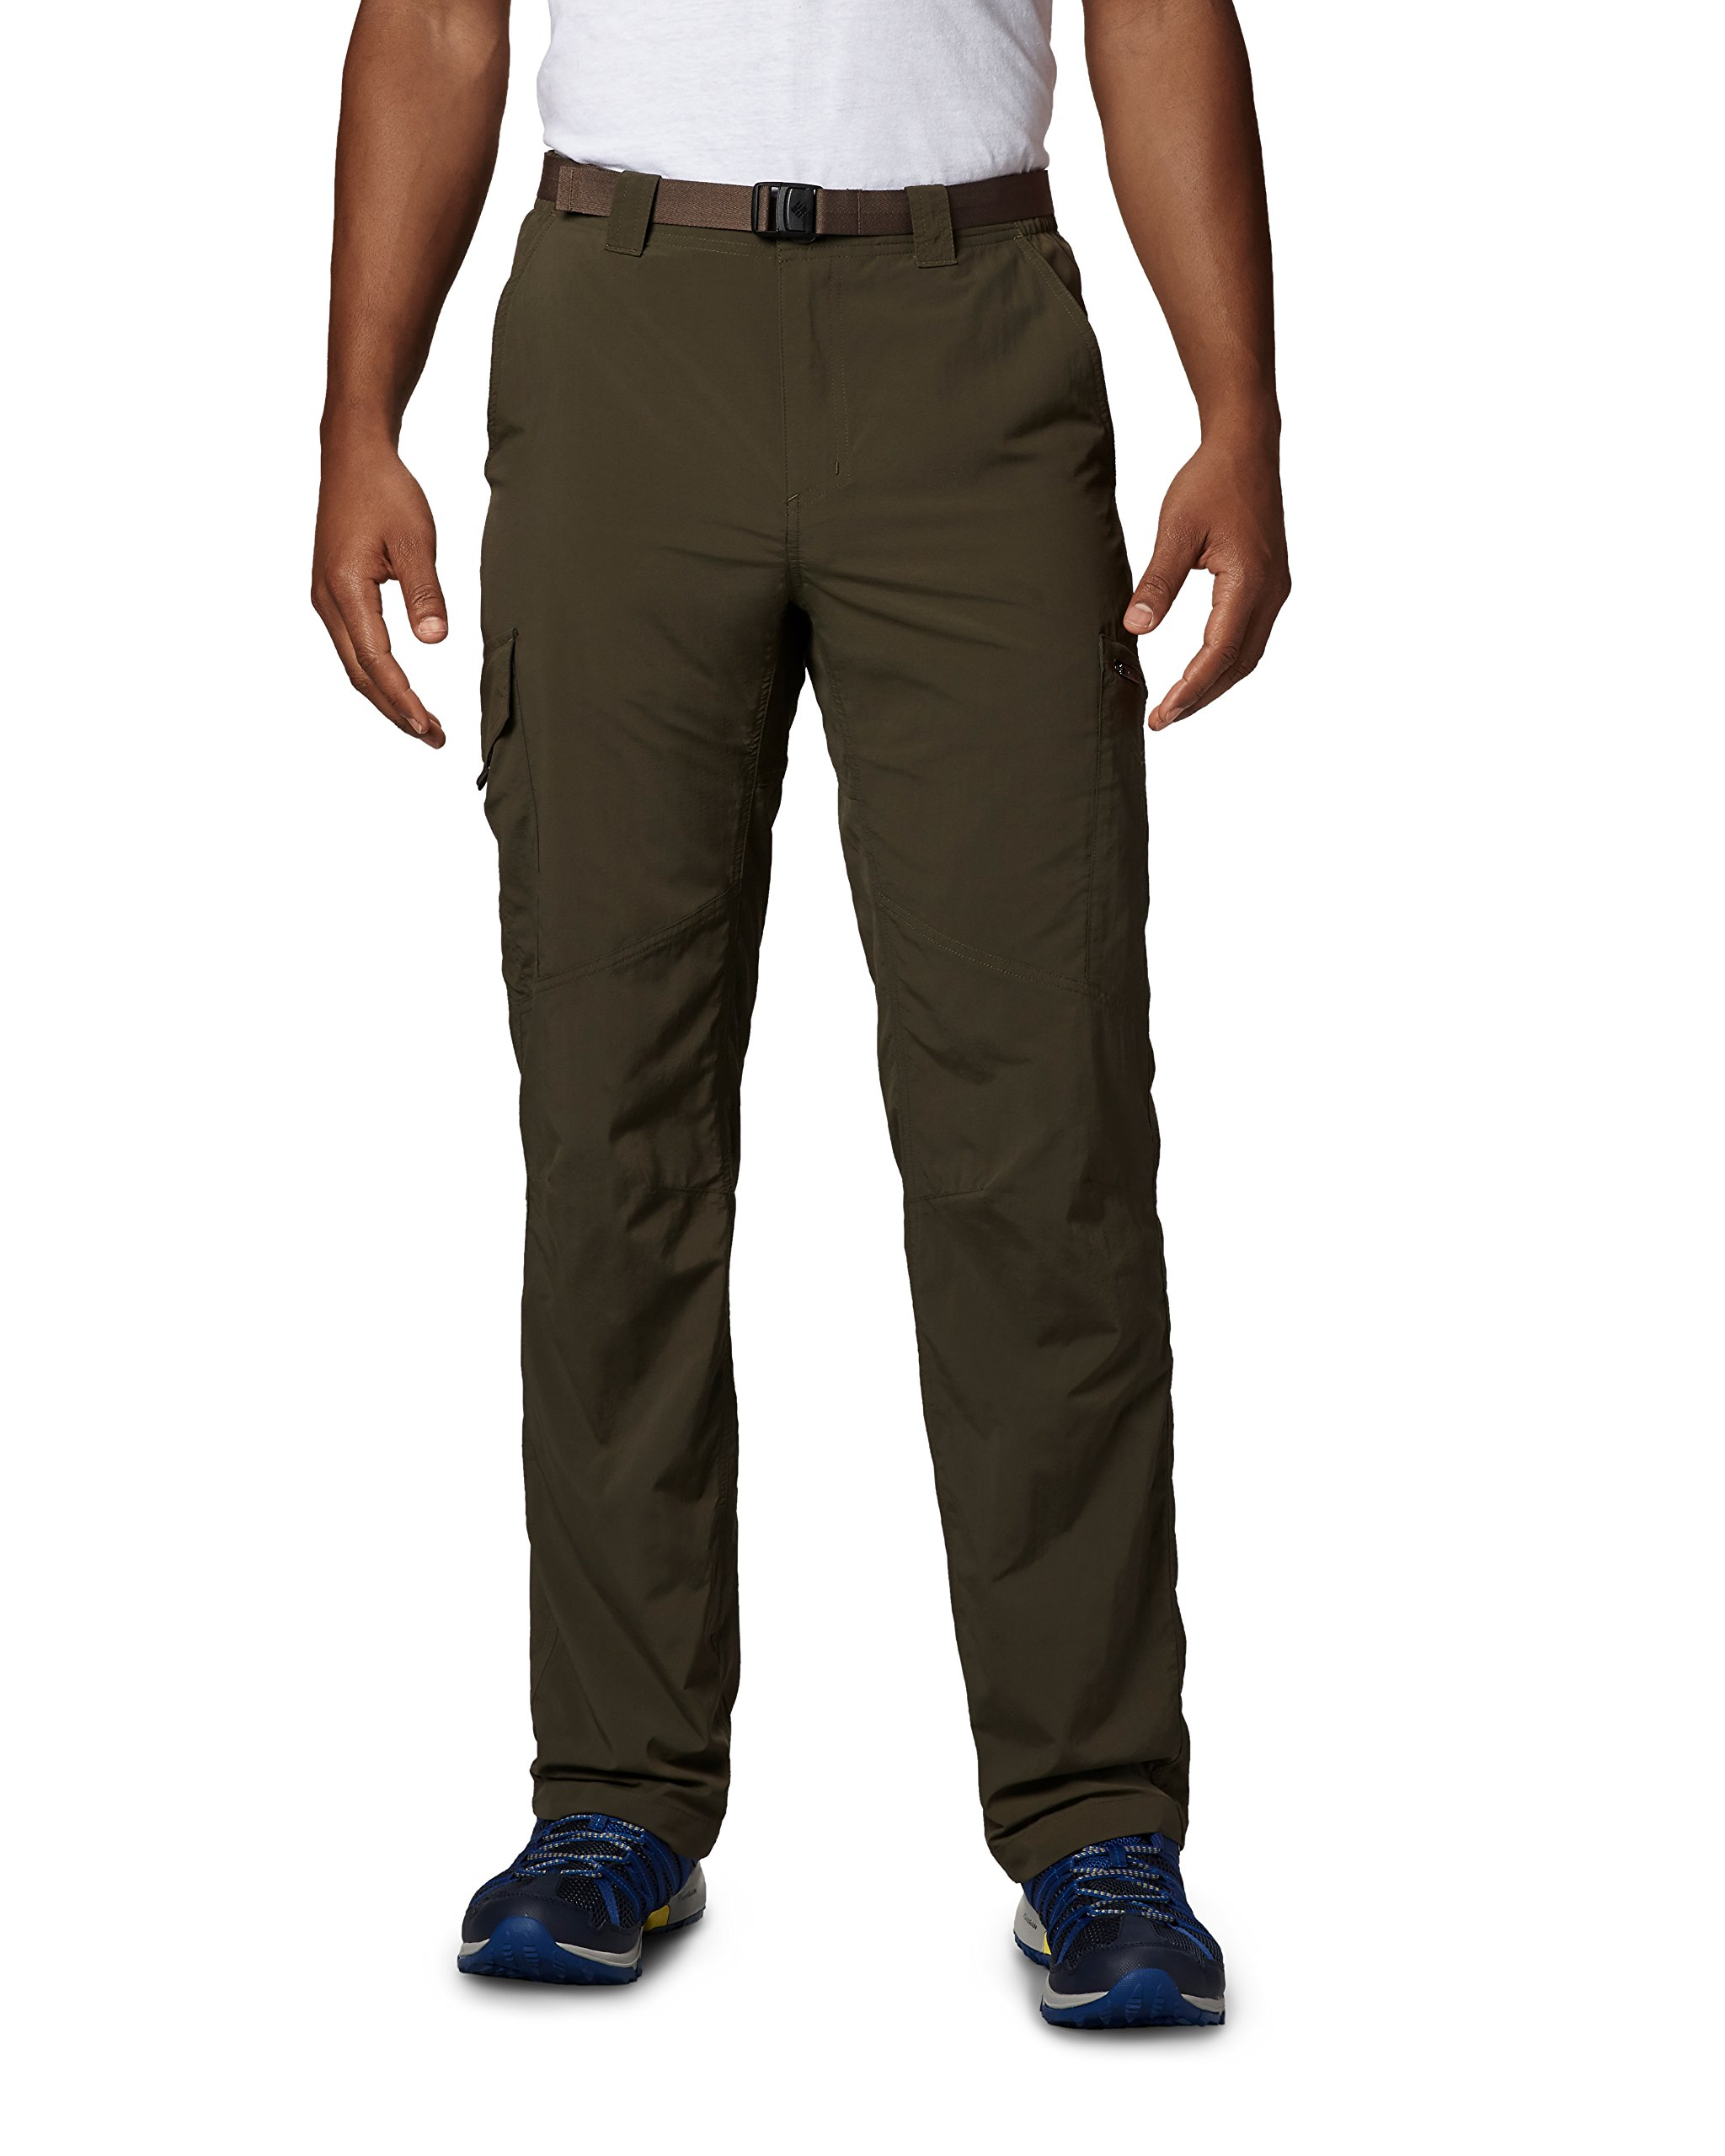 Columbia Silver Ridge Cargo Pant, Peat Moss, 34'' x 34'' by Columbia